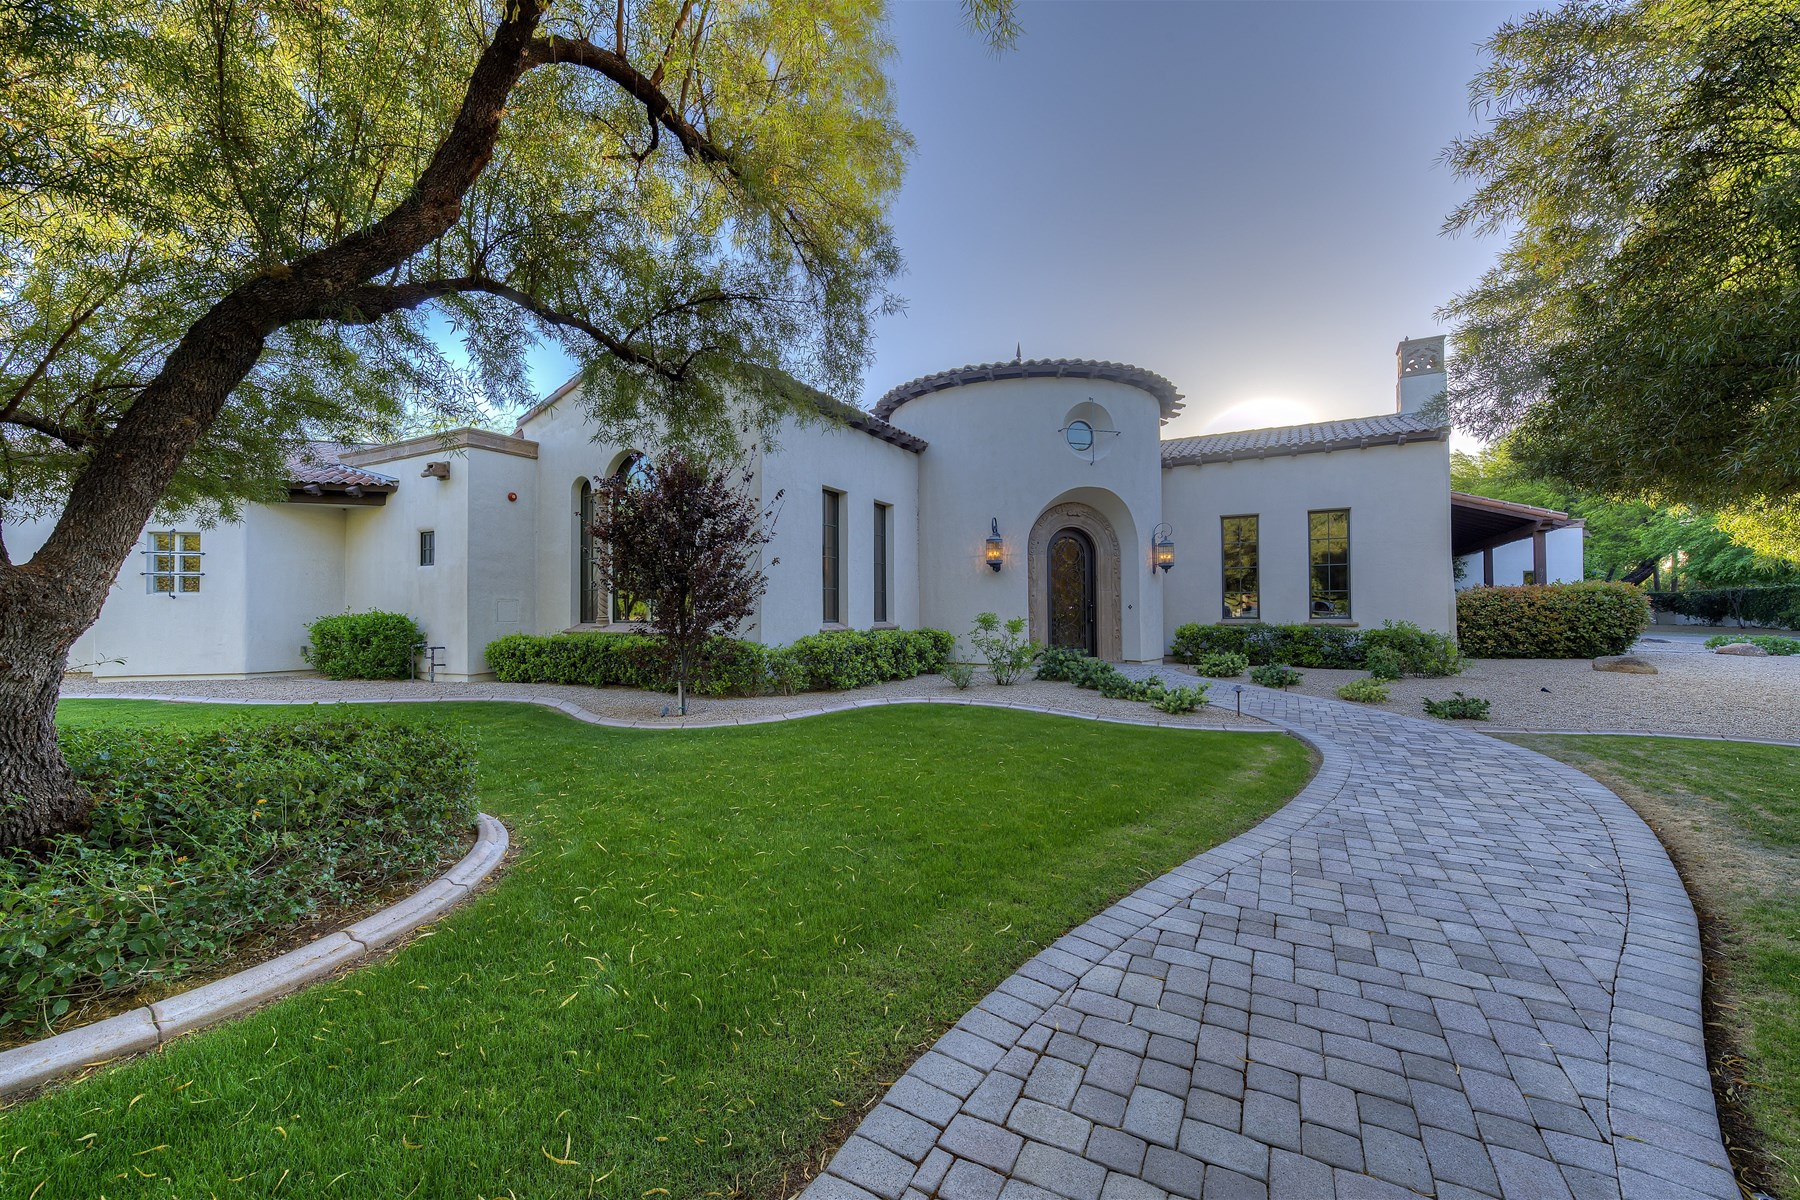 Moradia para Venda às Stunning Custom Santa Barbara Home Situated On A 1.1 Acre Cul-De-Sac Lot 9714 N 71st Street Paradise Valley, Arizona 85253 Estados Unidos